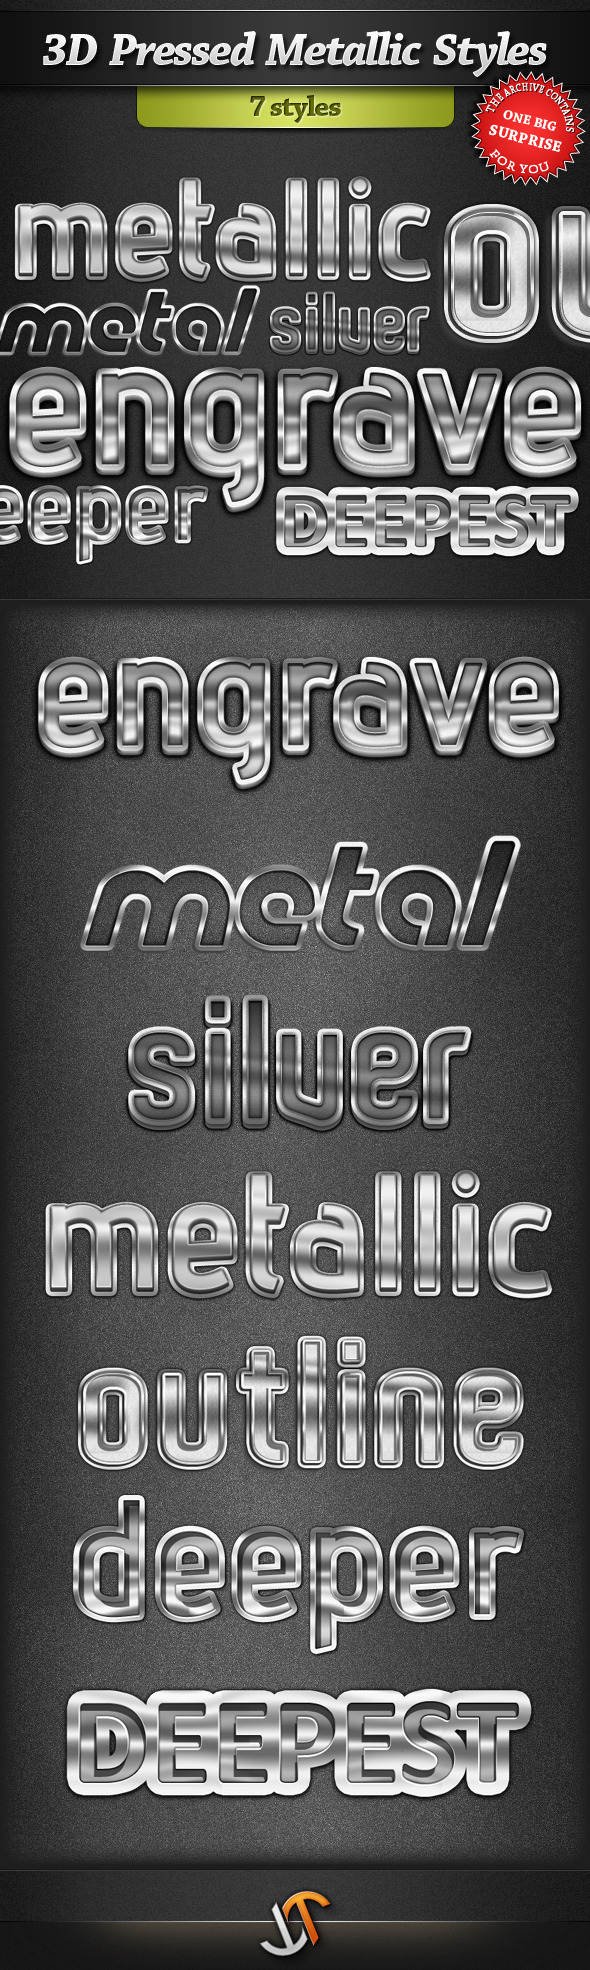 3D Pressed Metallic Text Styles - Text Effects Styles